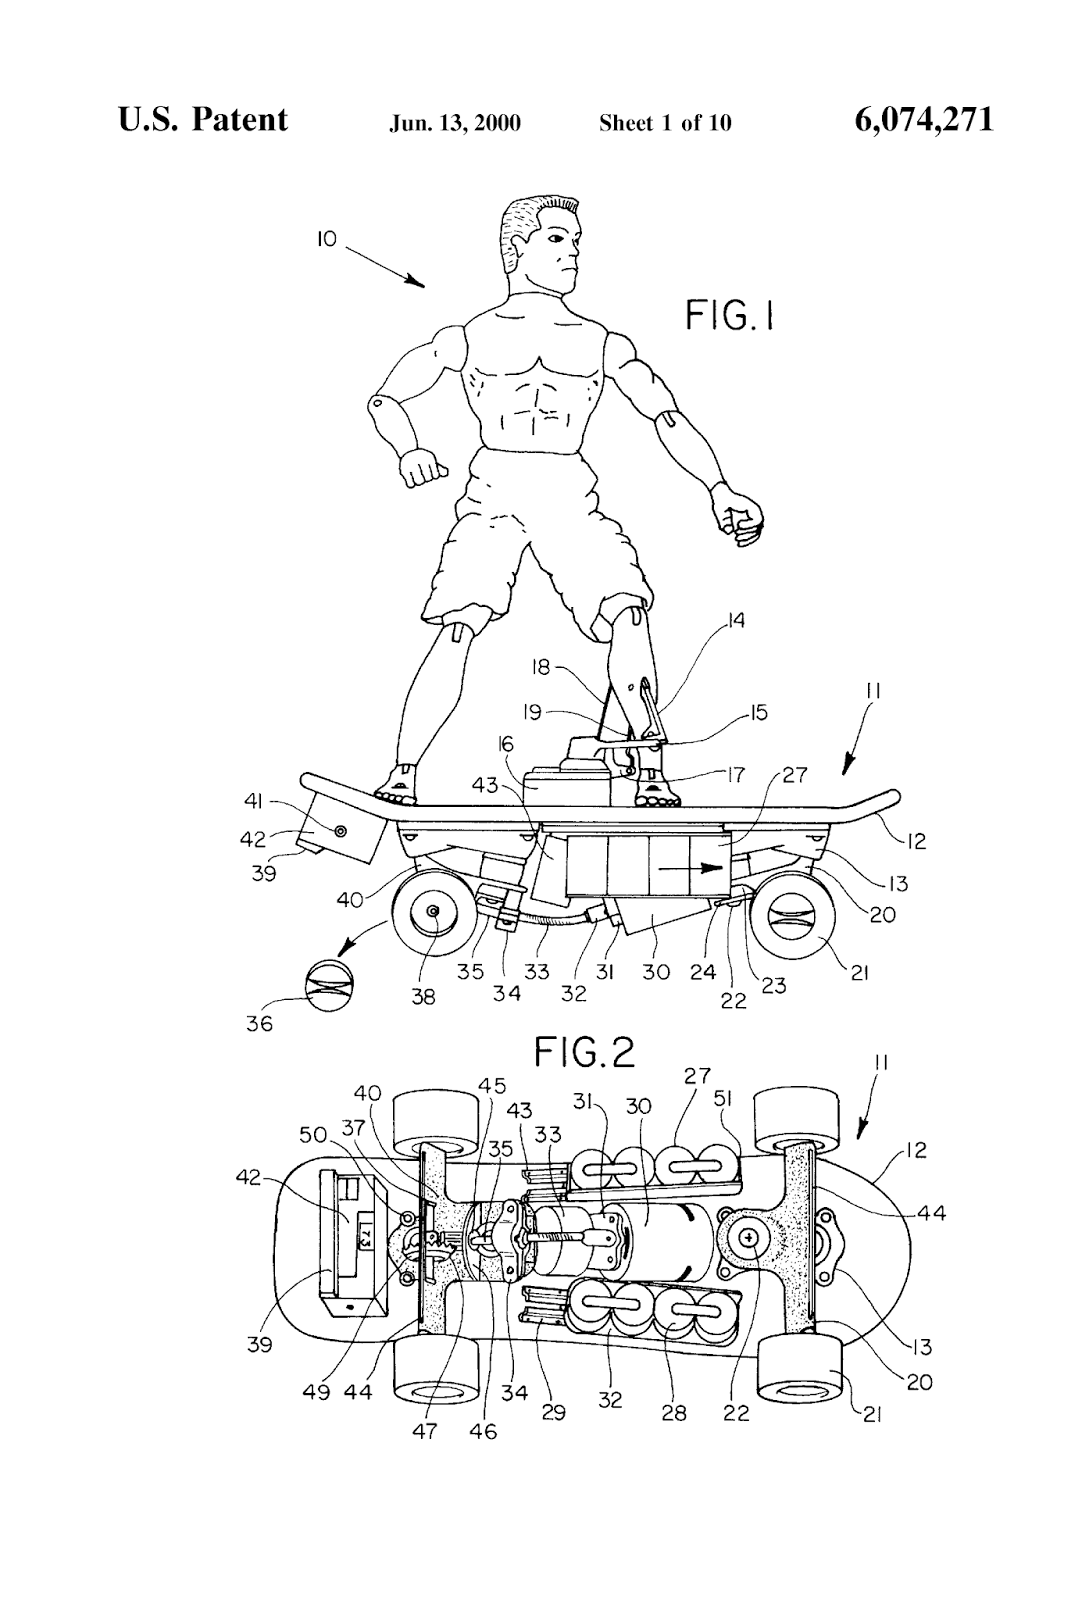 THE PATENT SEARCH BLOG: Skateboard inventions with a